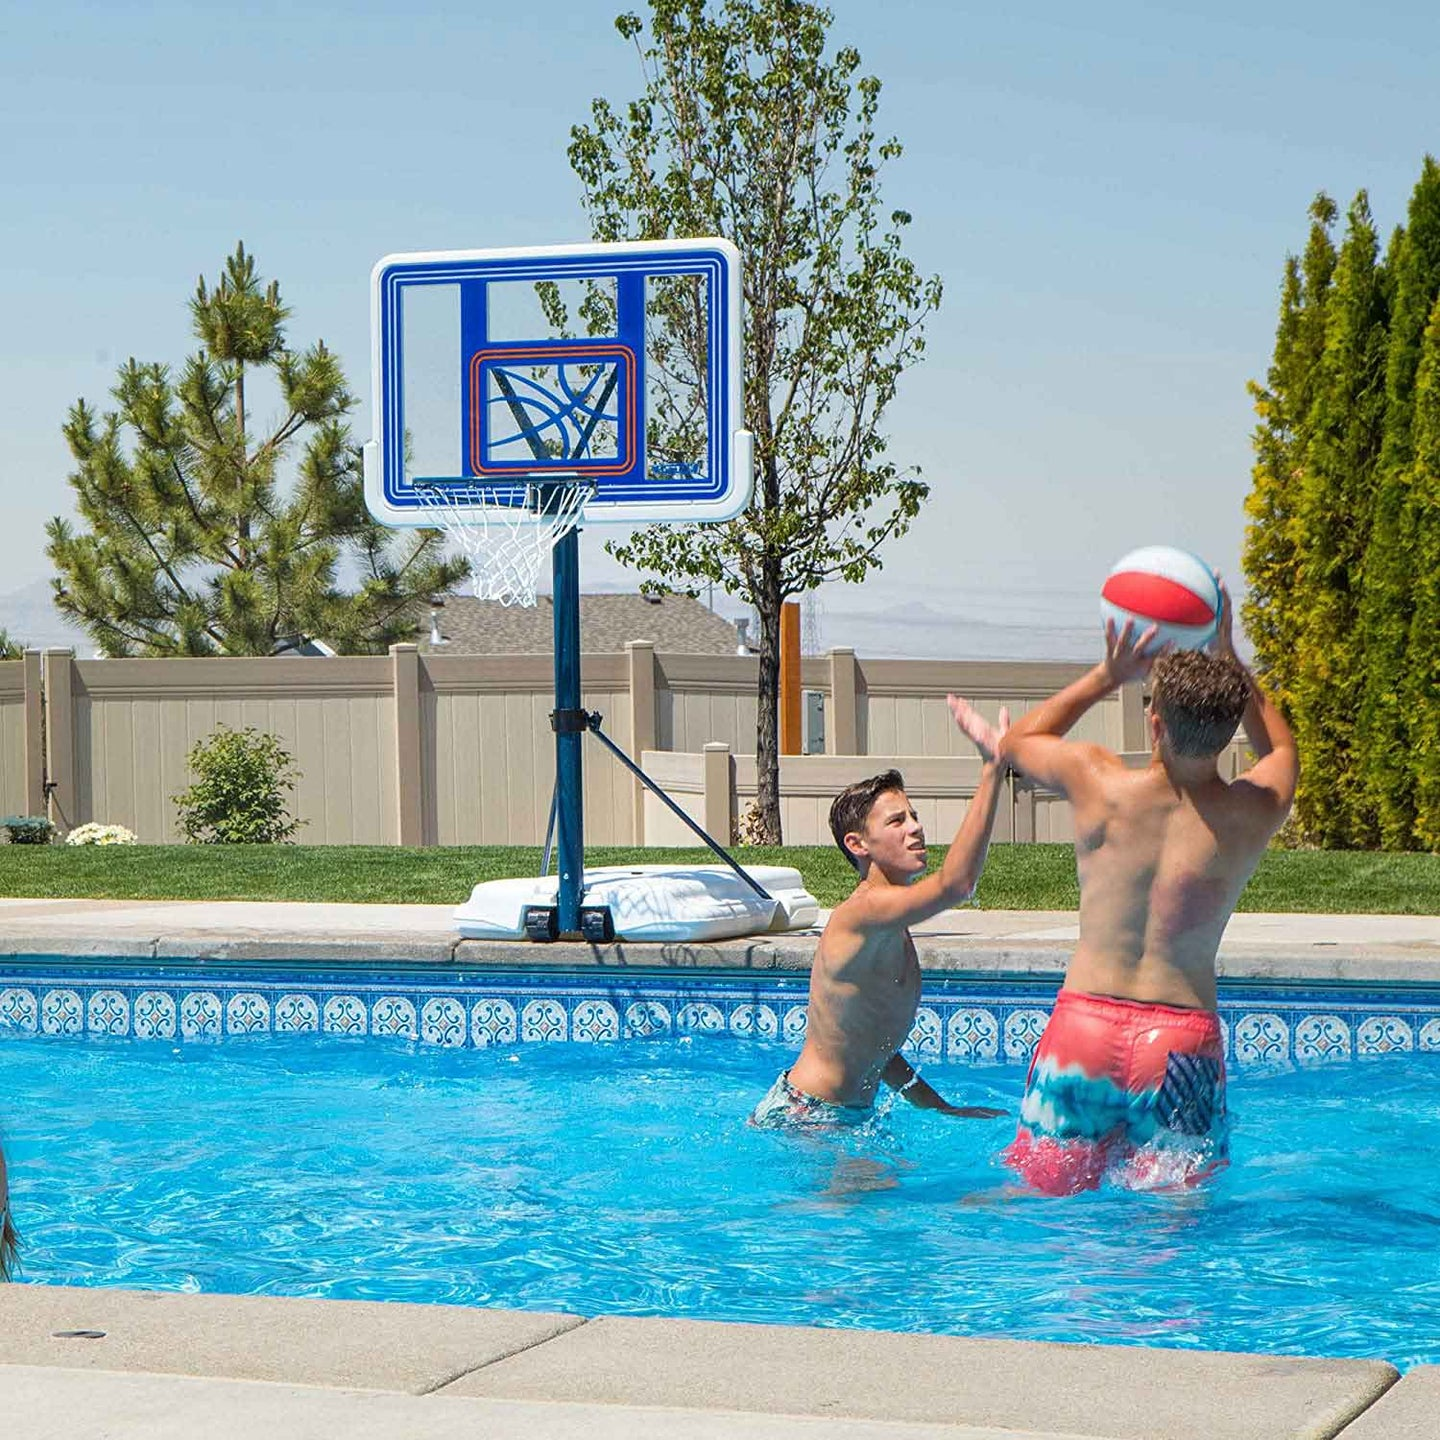 People playing basketball in a pool